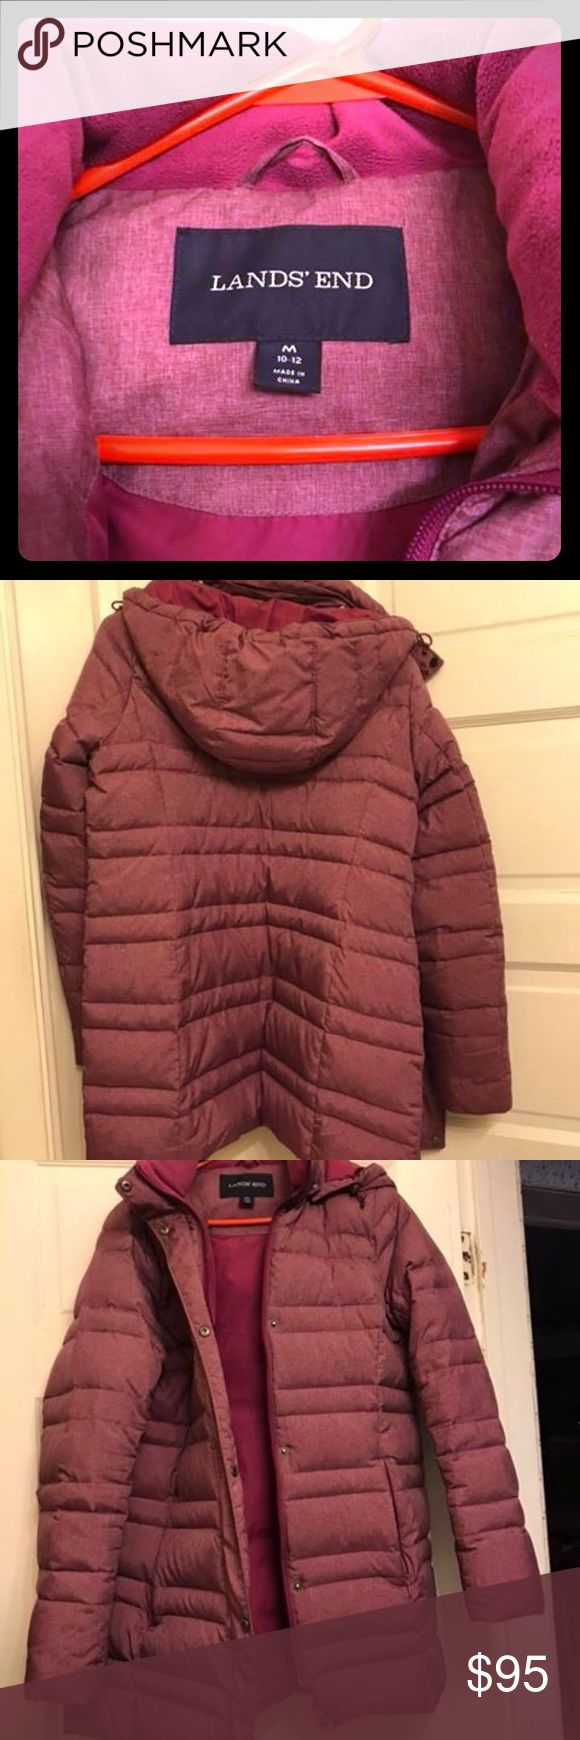 Lands end winter down coat woman's Very warm winter coat for sale! Great condition! Non smoking home. This coat was only worn for 1 season. Down, very good quality and nice color - hard to describe, a heathered pinkish purple color. Please let me know if you have any questions. Size m 10-12. Lands' End Jackets & Coats Puffers